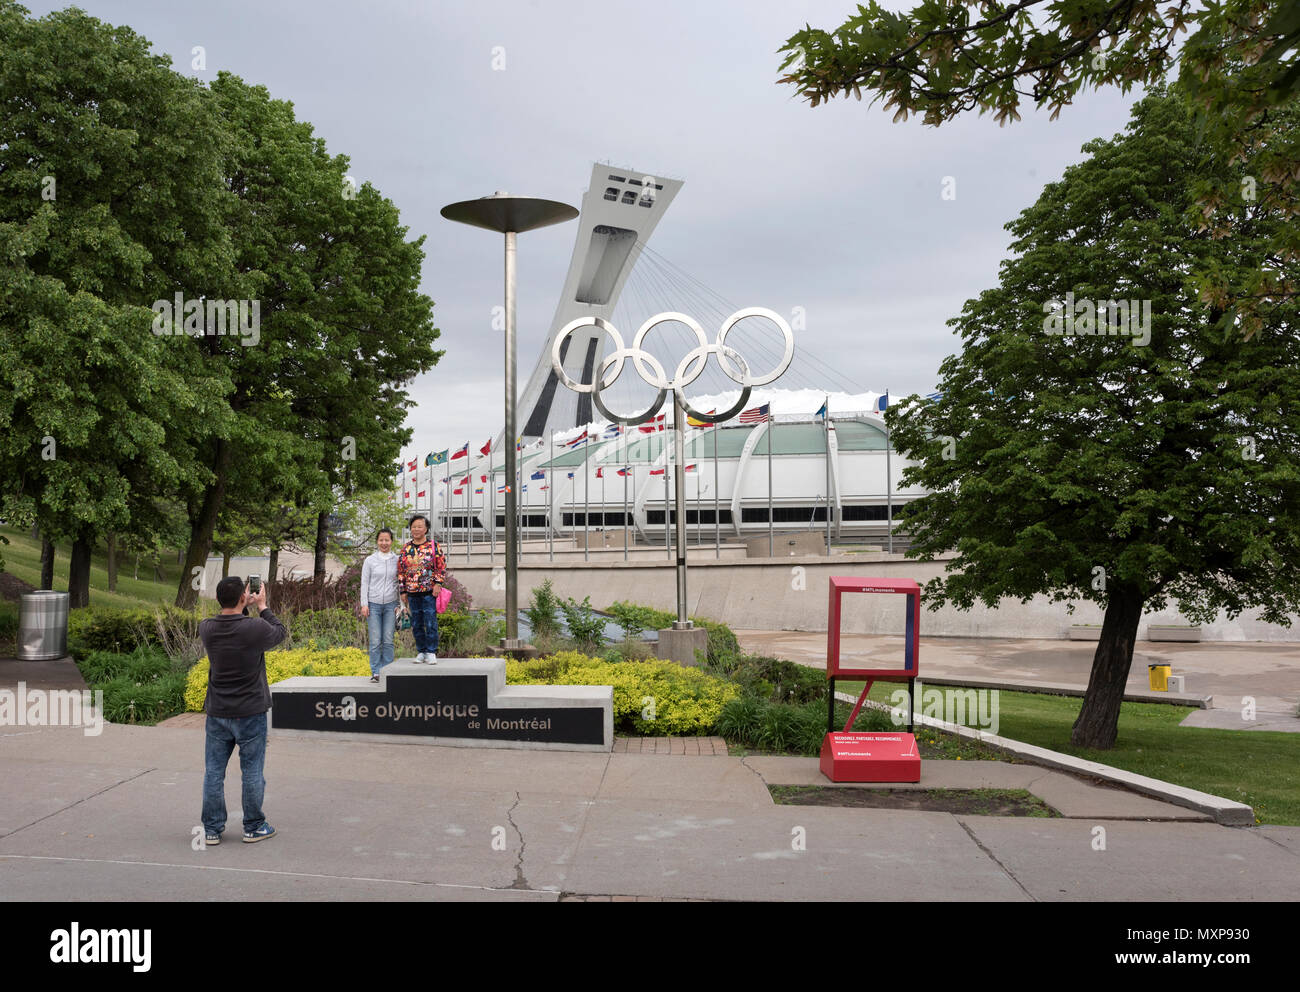 Tourists pose for a photograph at The Olympic Park, Montreal Canada. - Stock Image